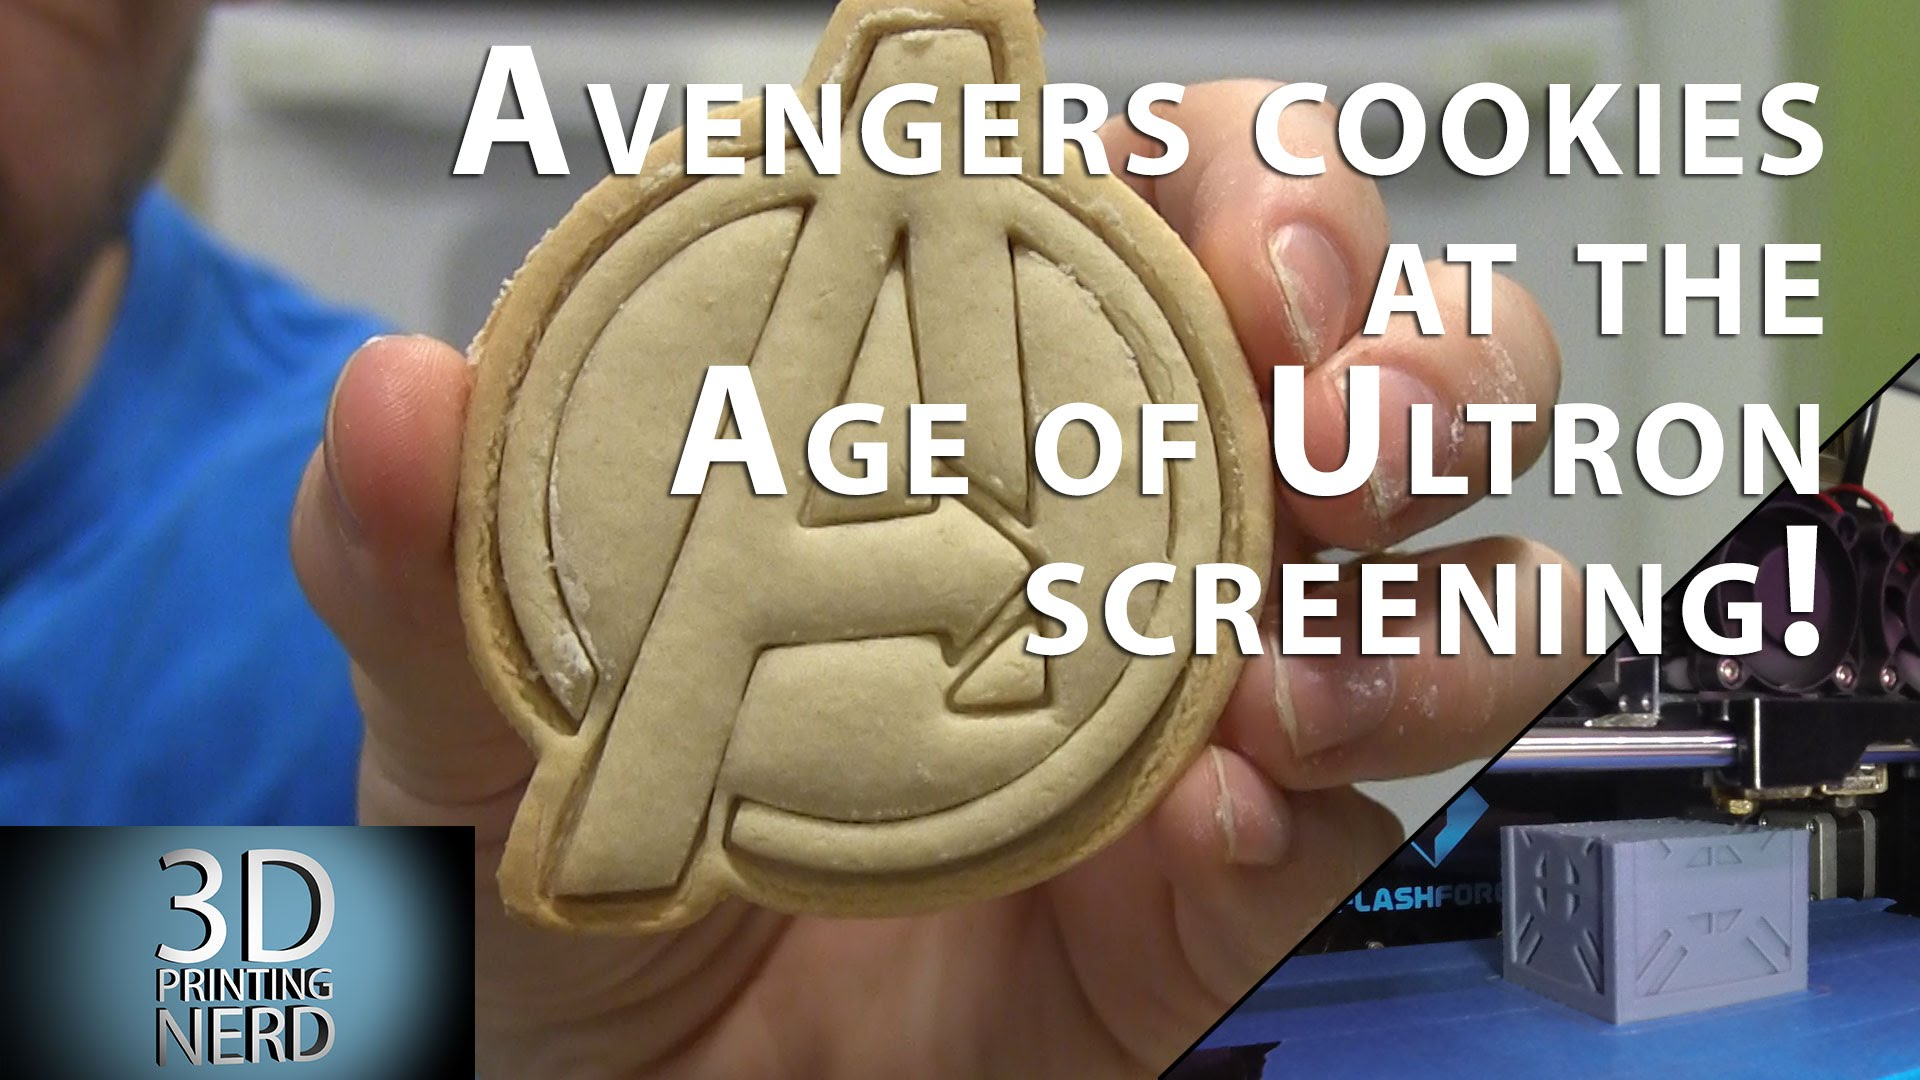 3D Printed Avengers cookie cutter / Age of Ultron screening!